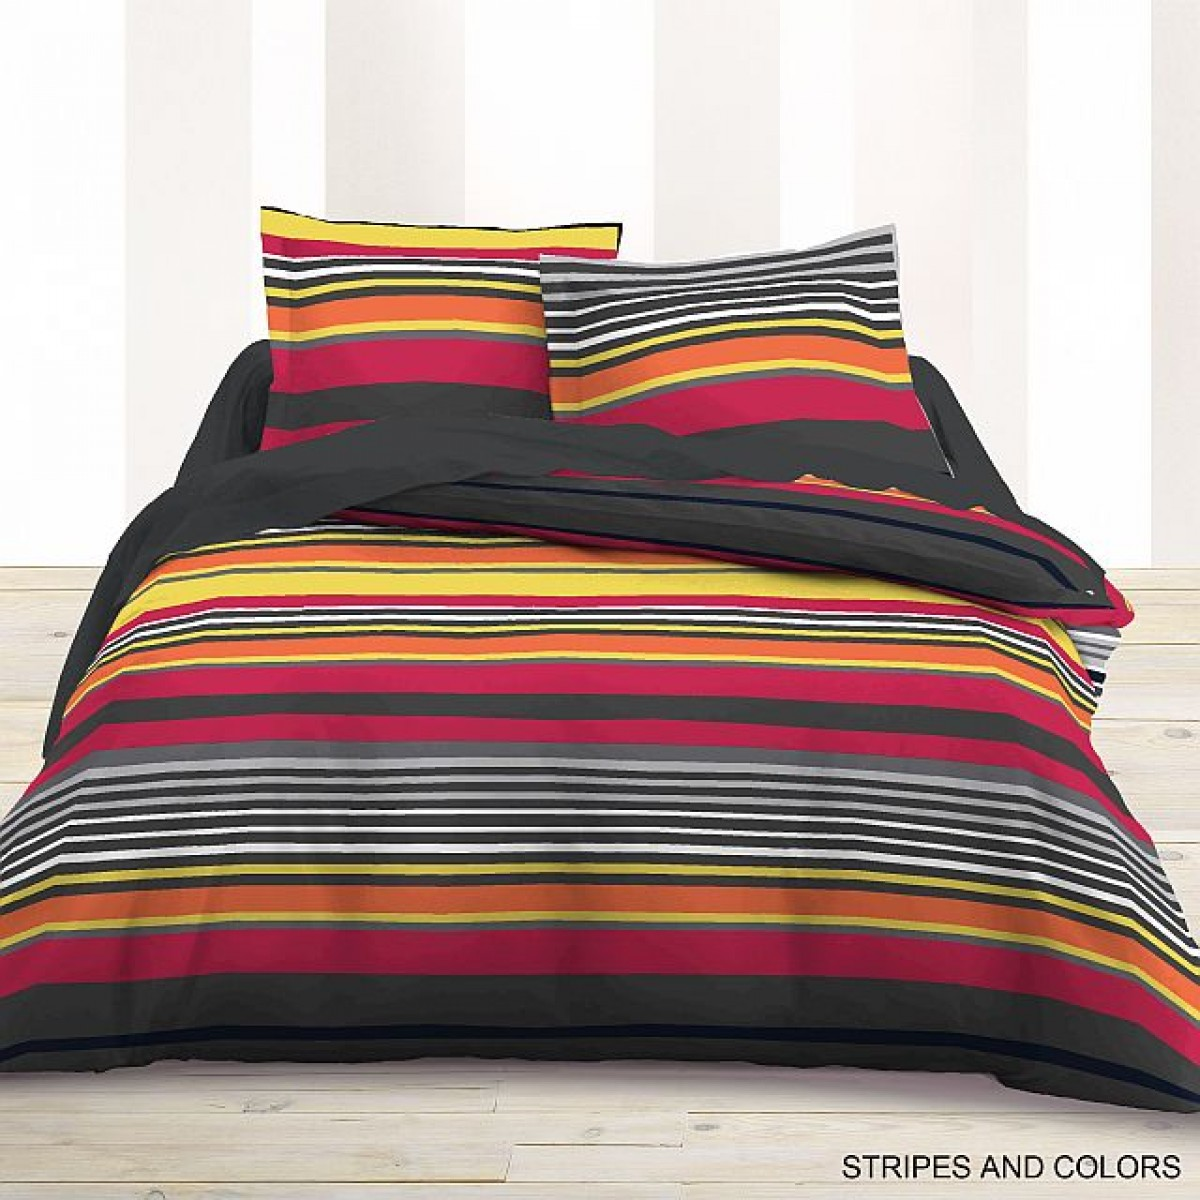 parure de lit 4 pi ces flanelle imprim e stripes colors les douces nuits de ma linge de maison. Black Bedroom Furniture Sets. Home Design Ideas